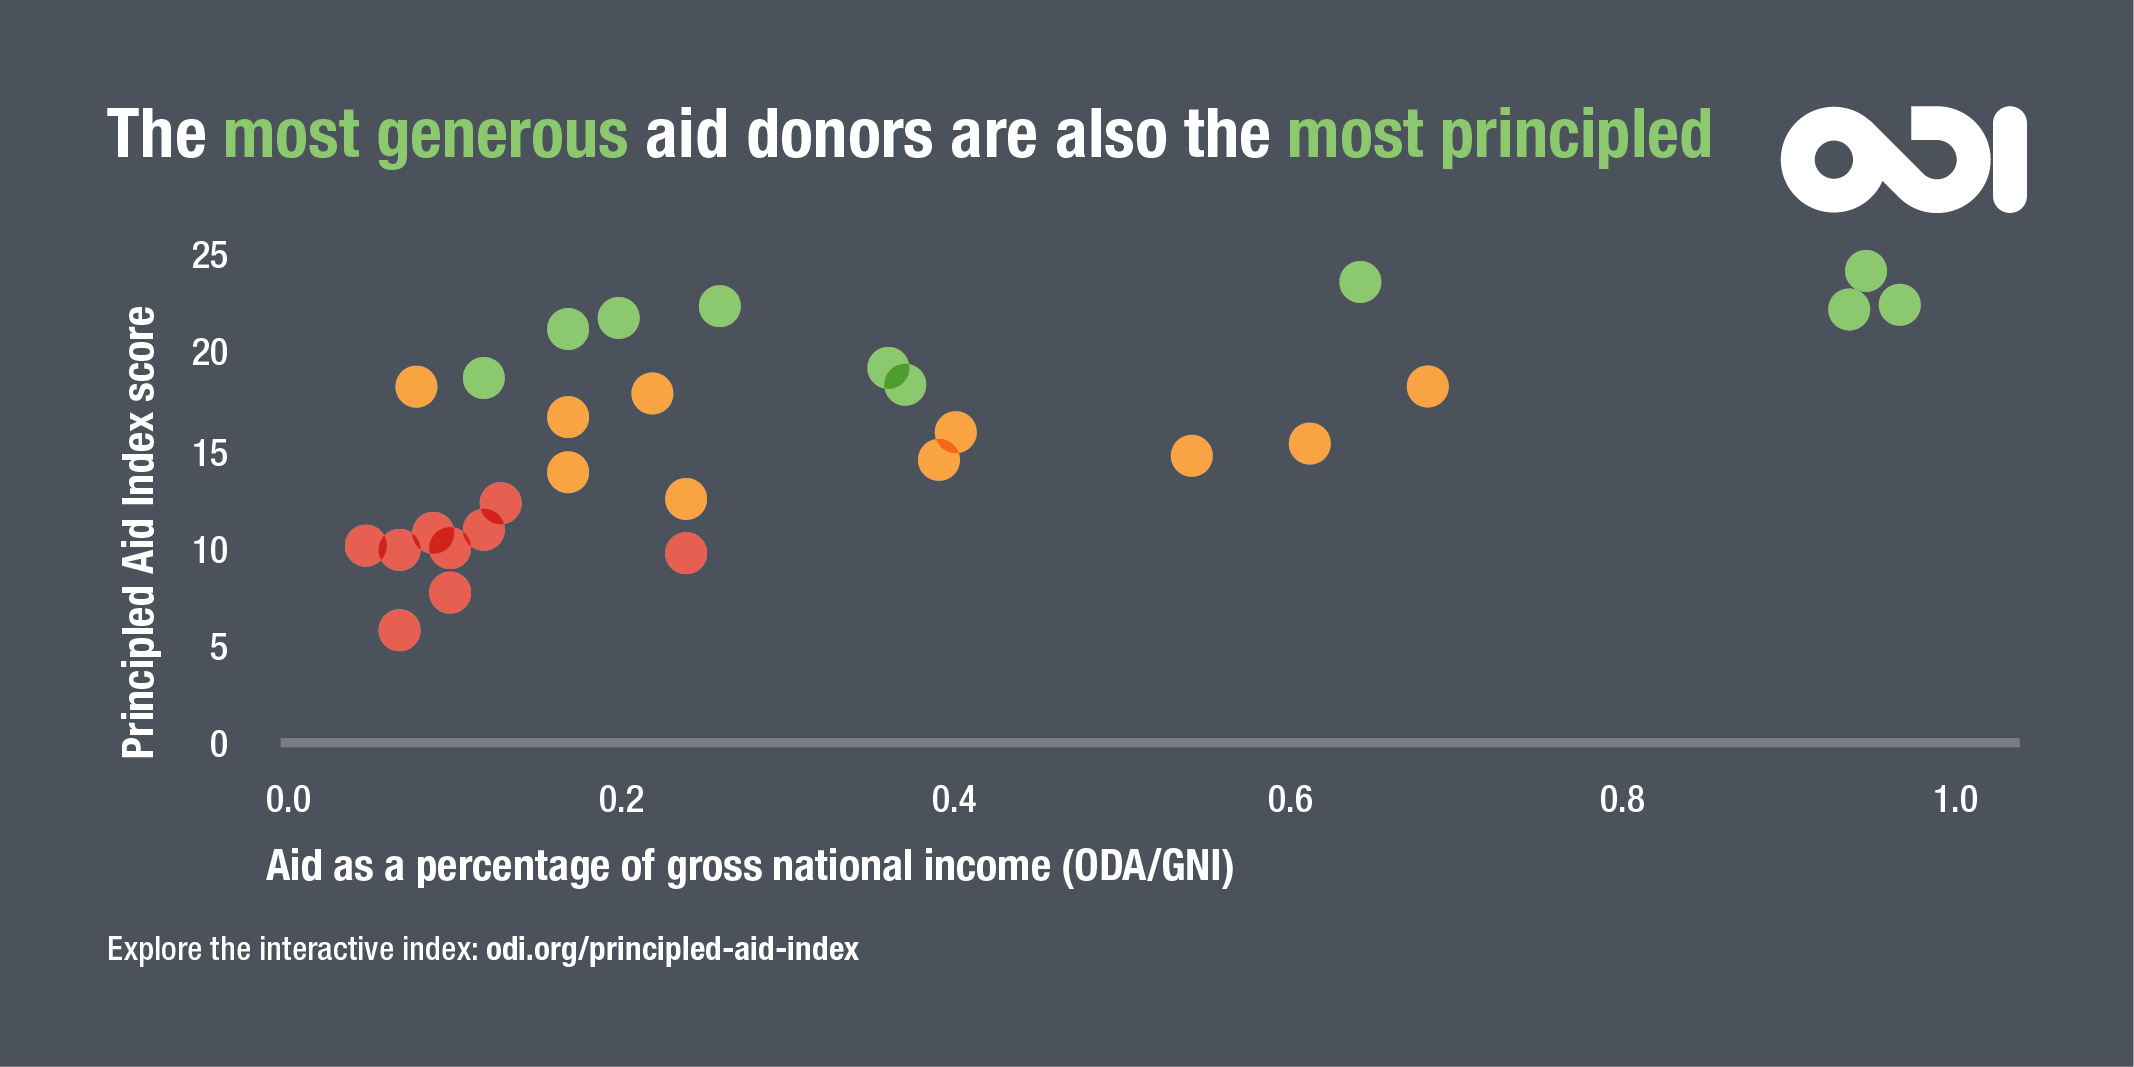 The most generous donors also tend to be most principled